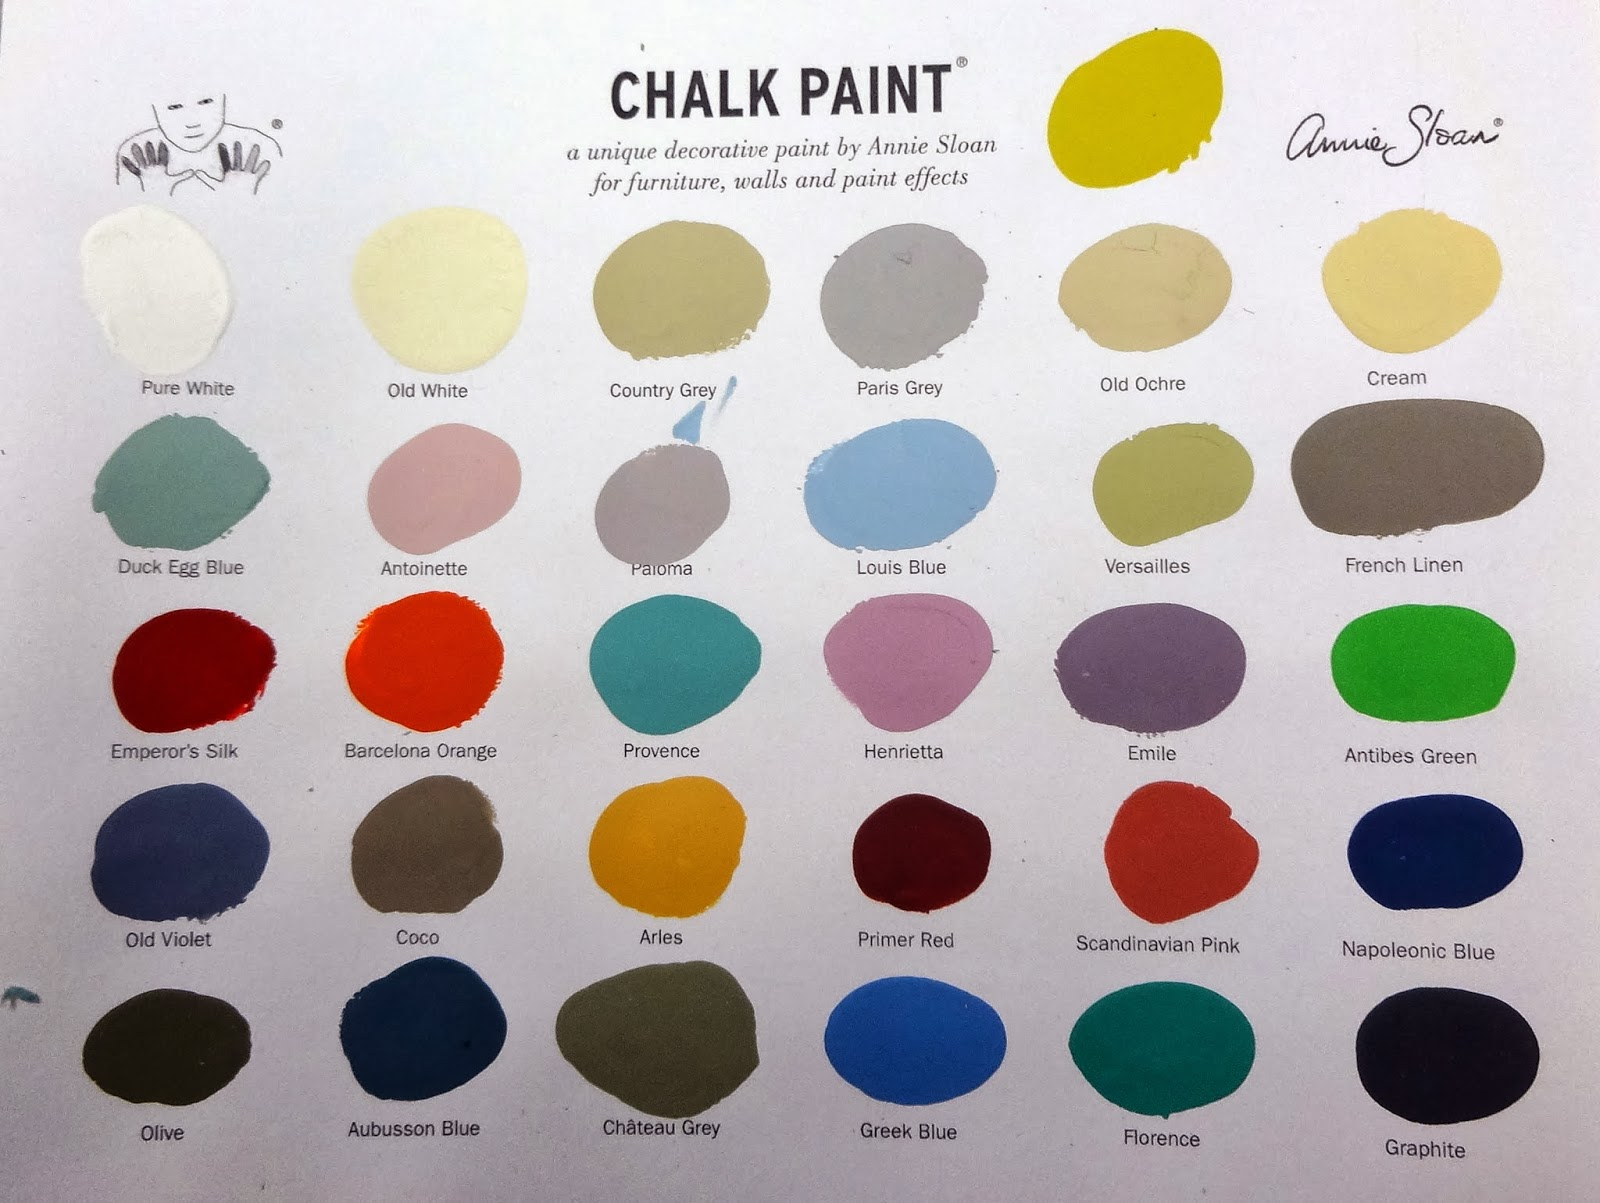 Colors of annie sloan chalk paint - It Really Is Fun To Transform Furniture Without Any Sanding Or Scraping Old Layers Of Paint What S Your Favorite Annie Sloan Chalk Paint Color Or Color